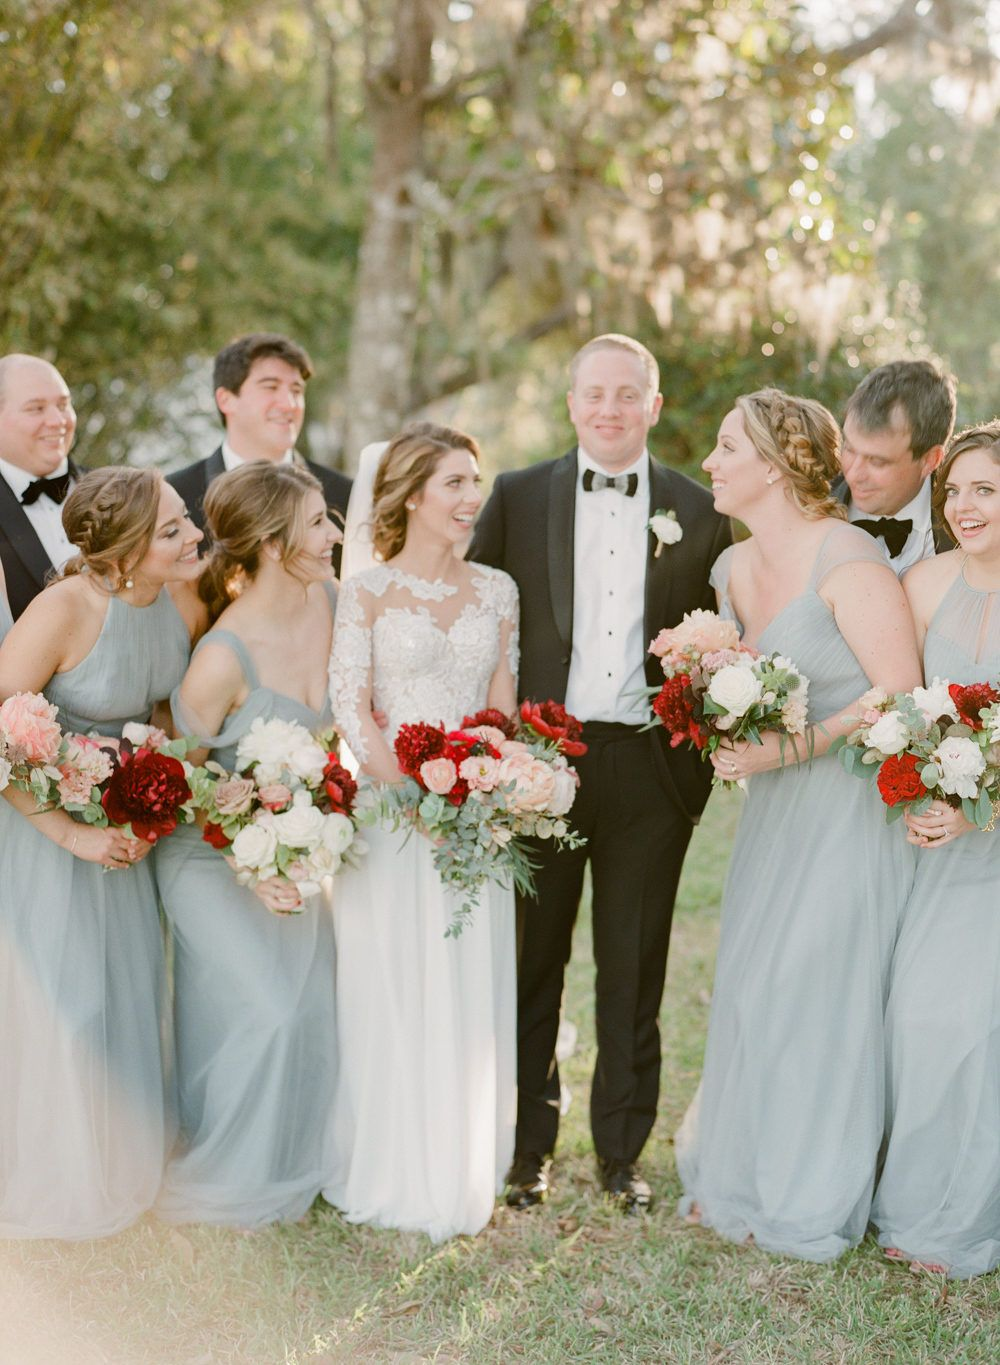 This is how to keep blush looking fresh bridesmaid style